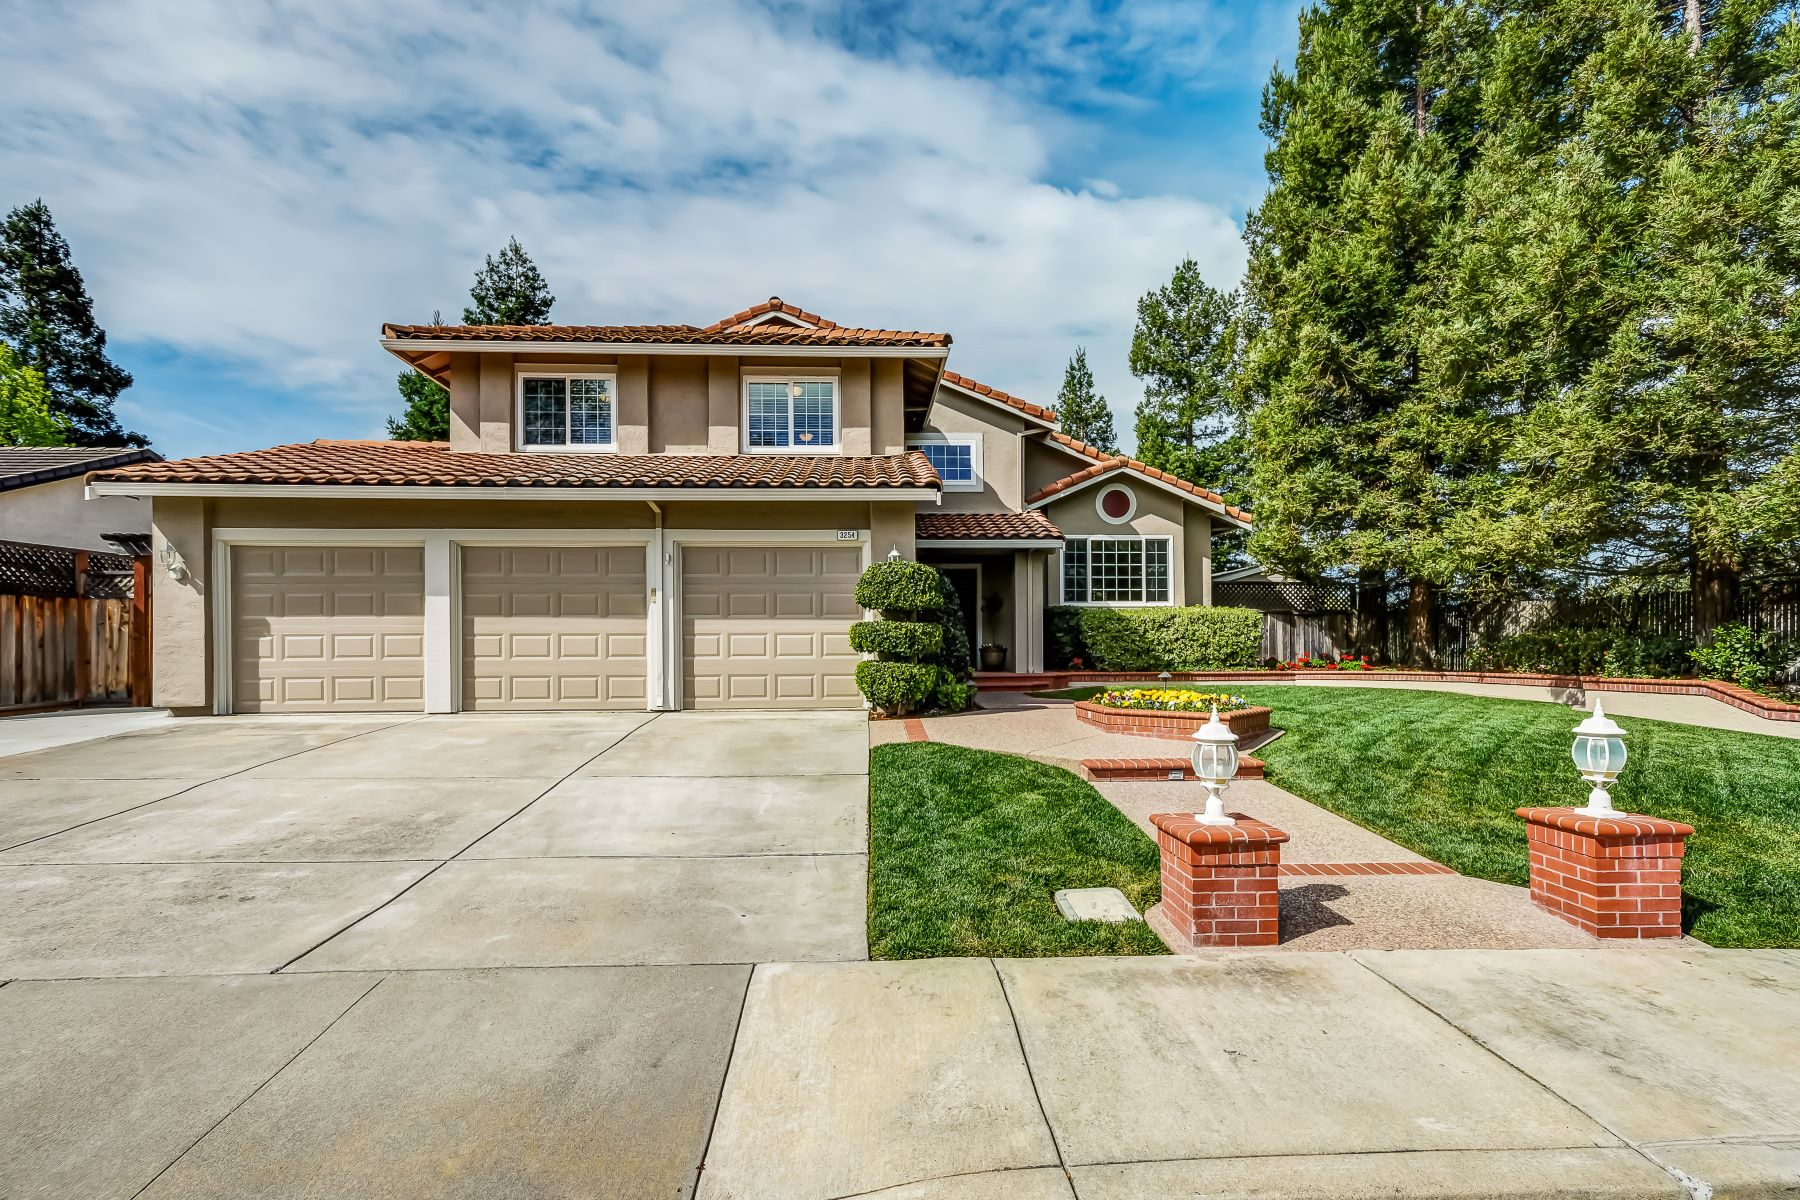 Anastacia Ct. 3254  Anastacia Ct Pleasanton, California 94588 United States